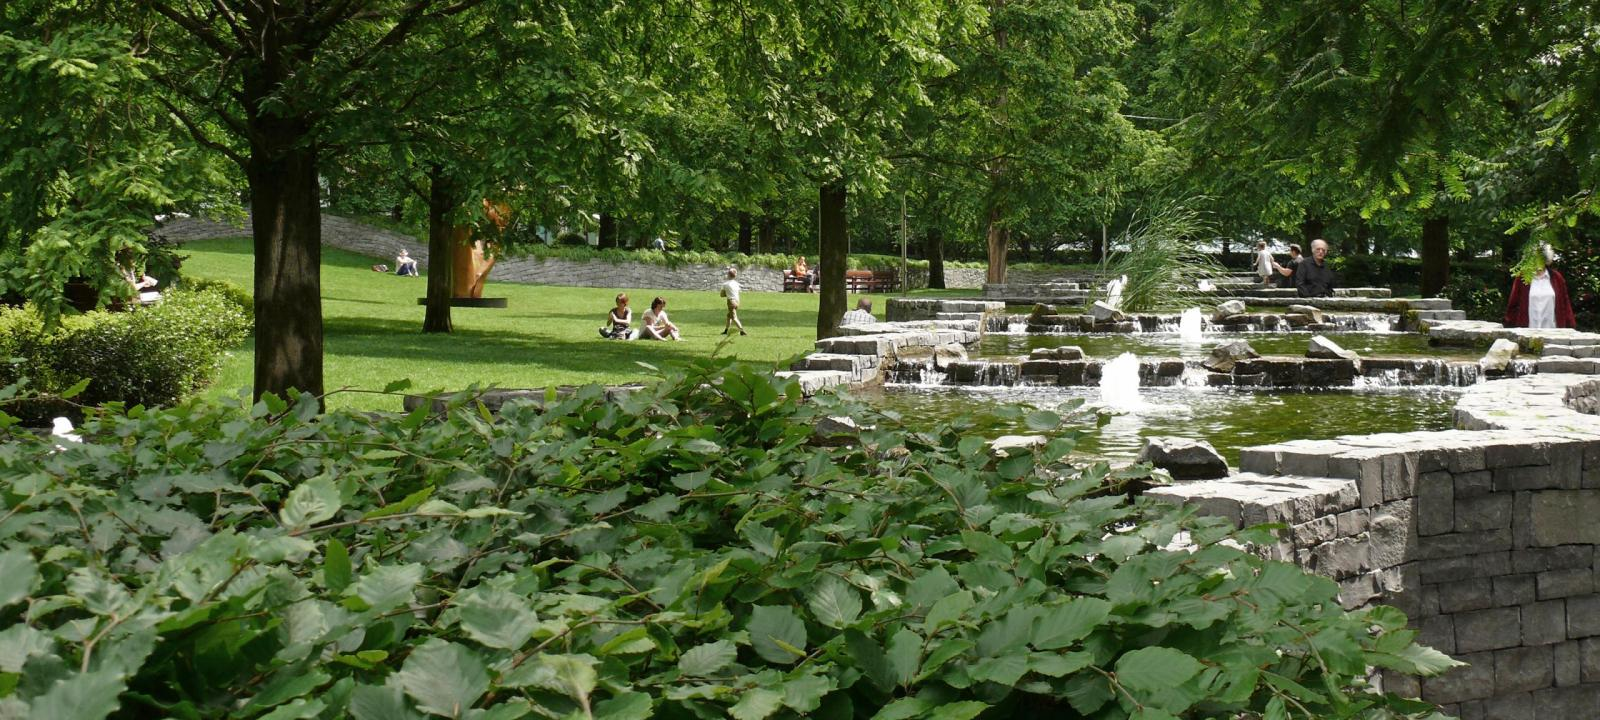 Park with trees and water basis with fountains